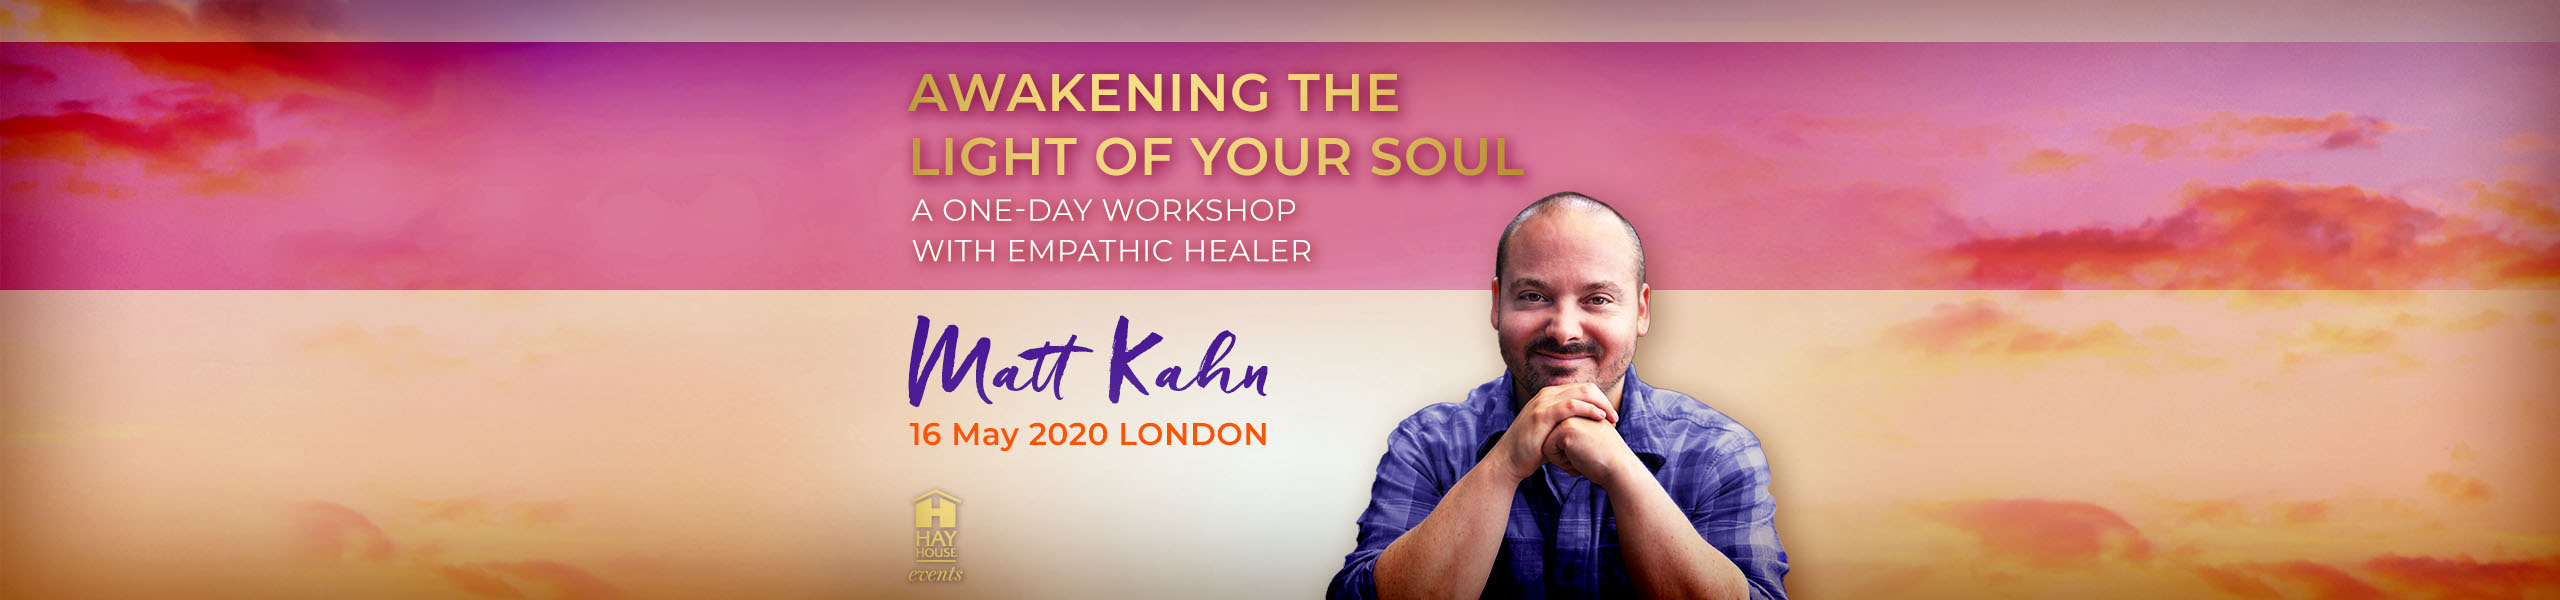 Awakening the Light of Your Soul - General LONDON